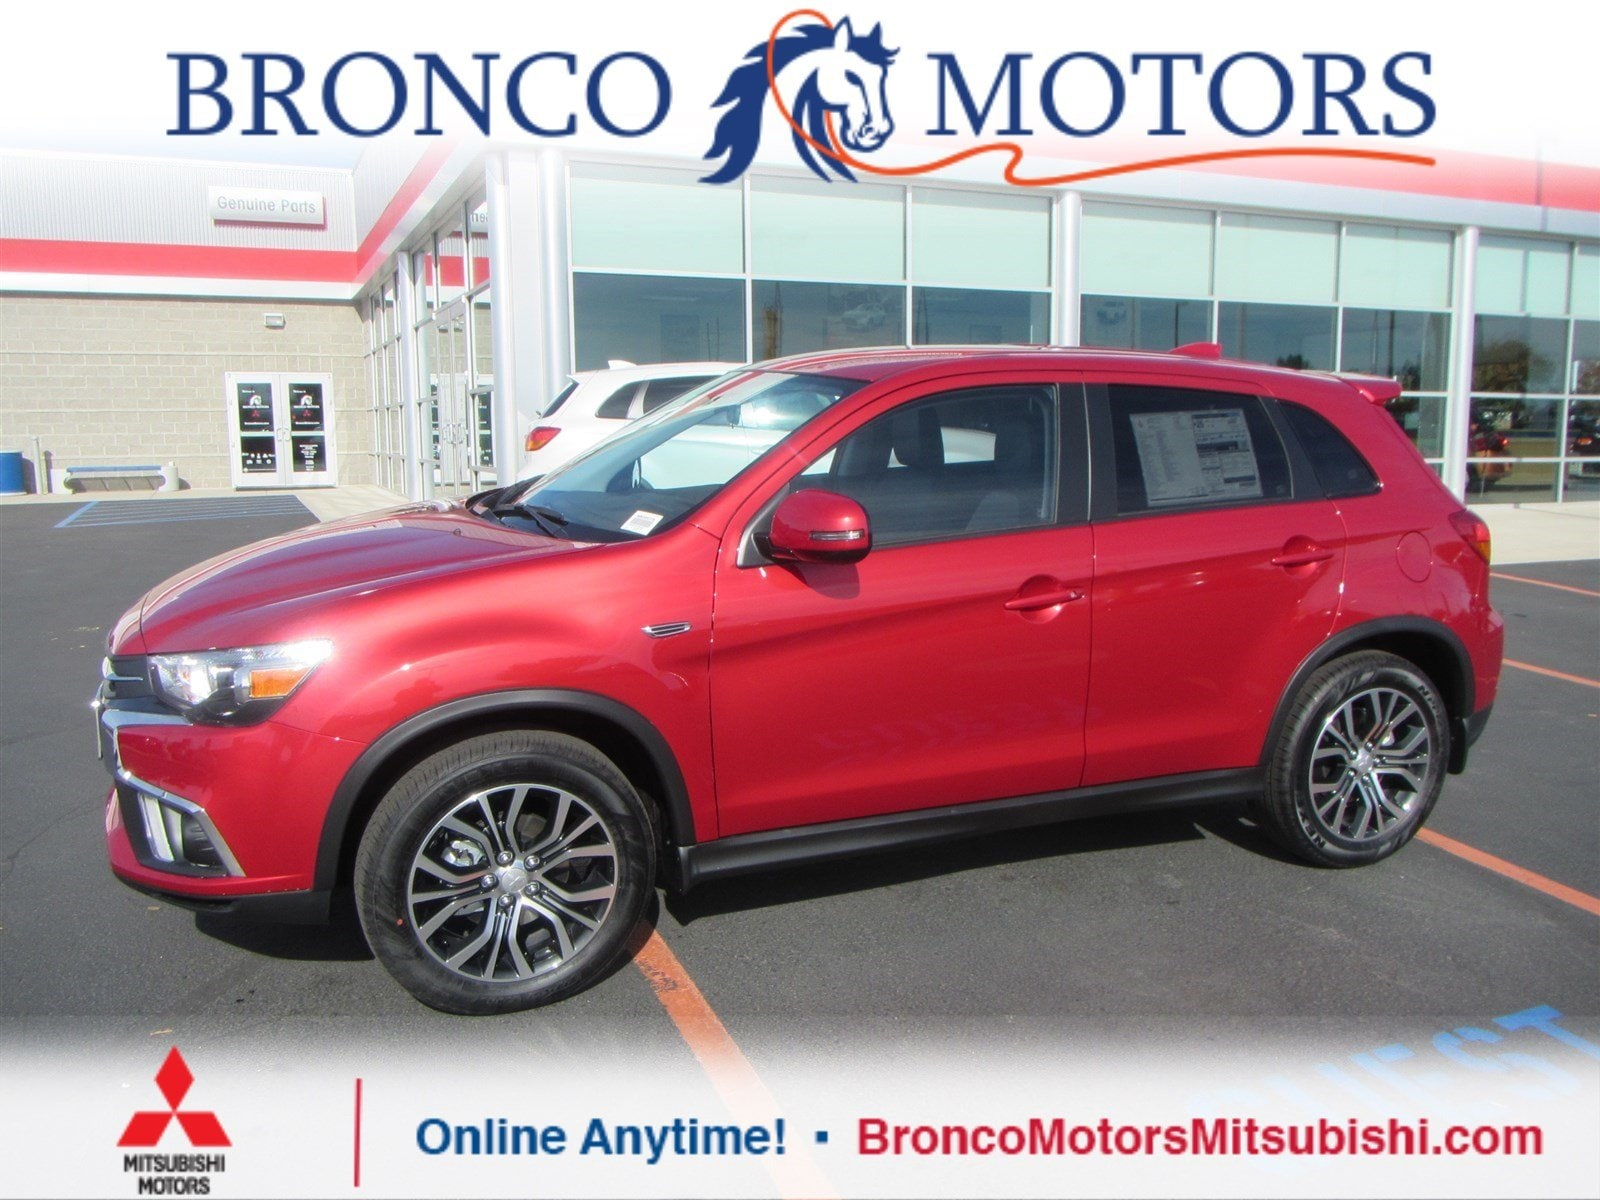 Cuv Car Featured Bronco Motors Family Of Dealerships